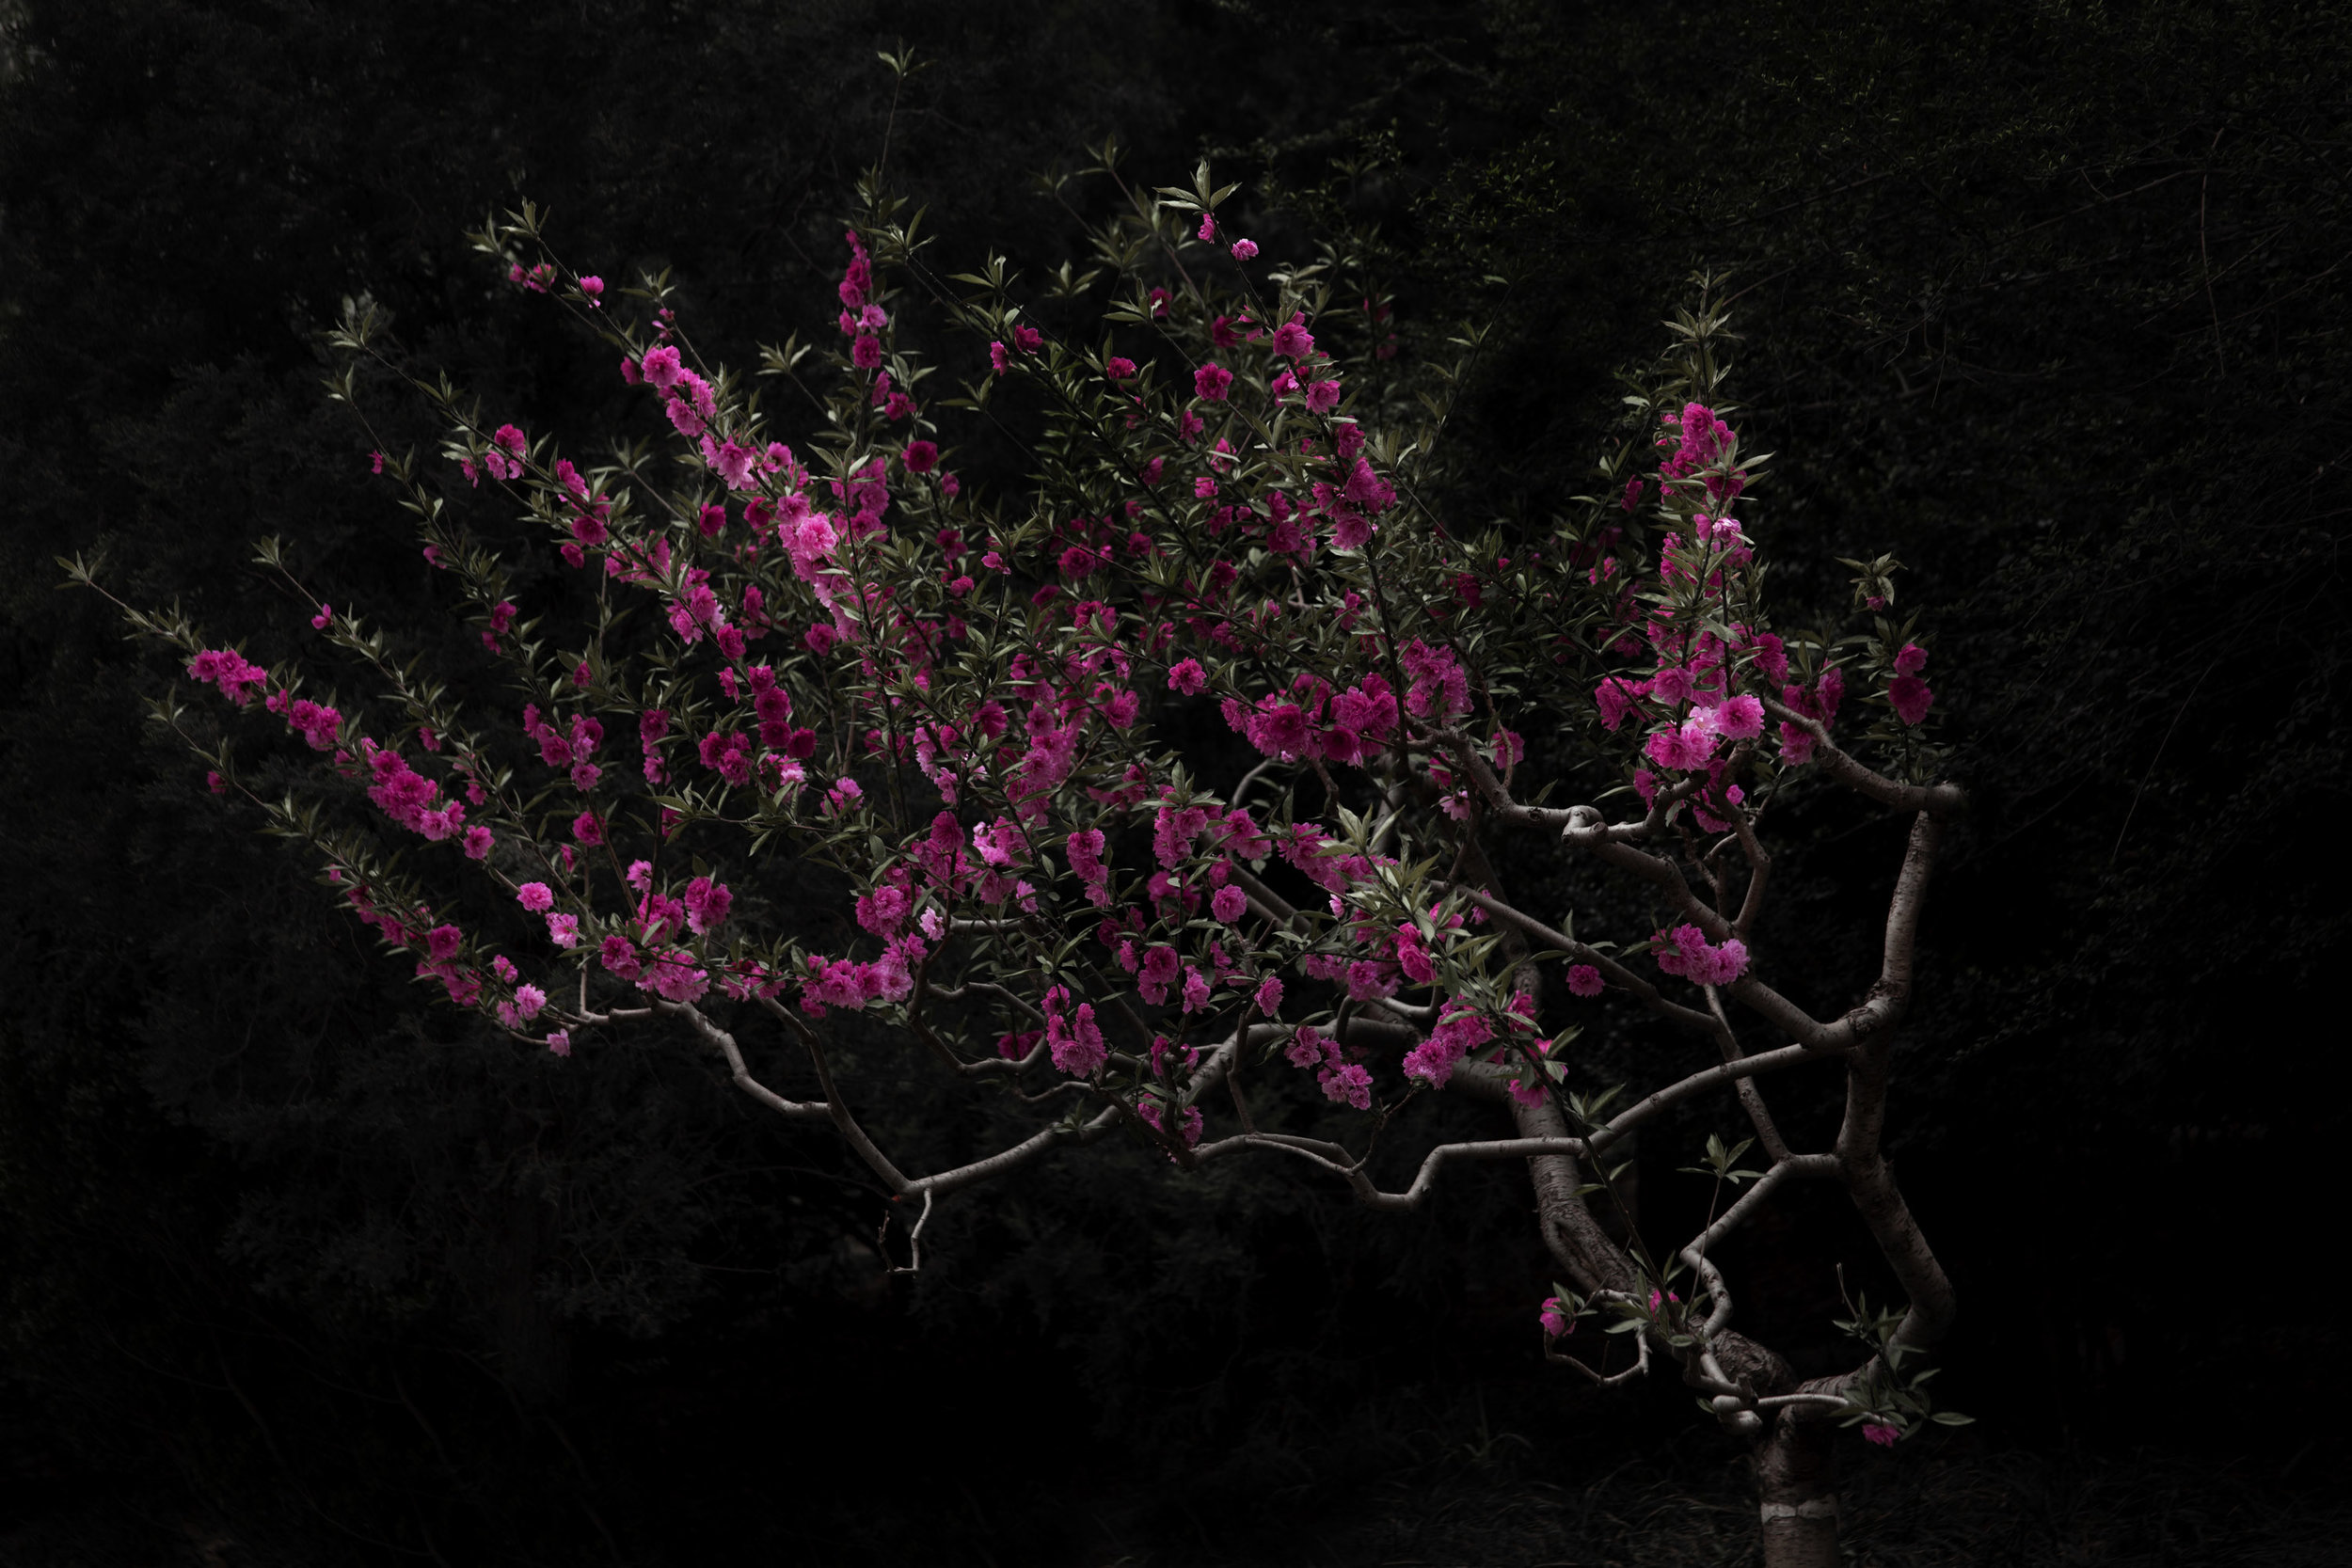 shen-wei-between-blossoms-photography-of-china-peach_tree.jpg